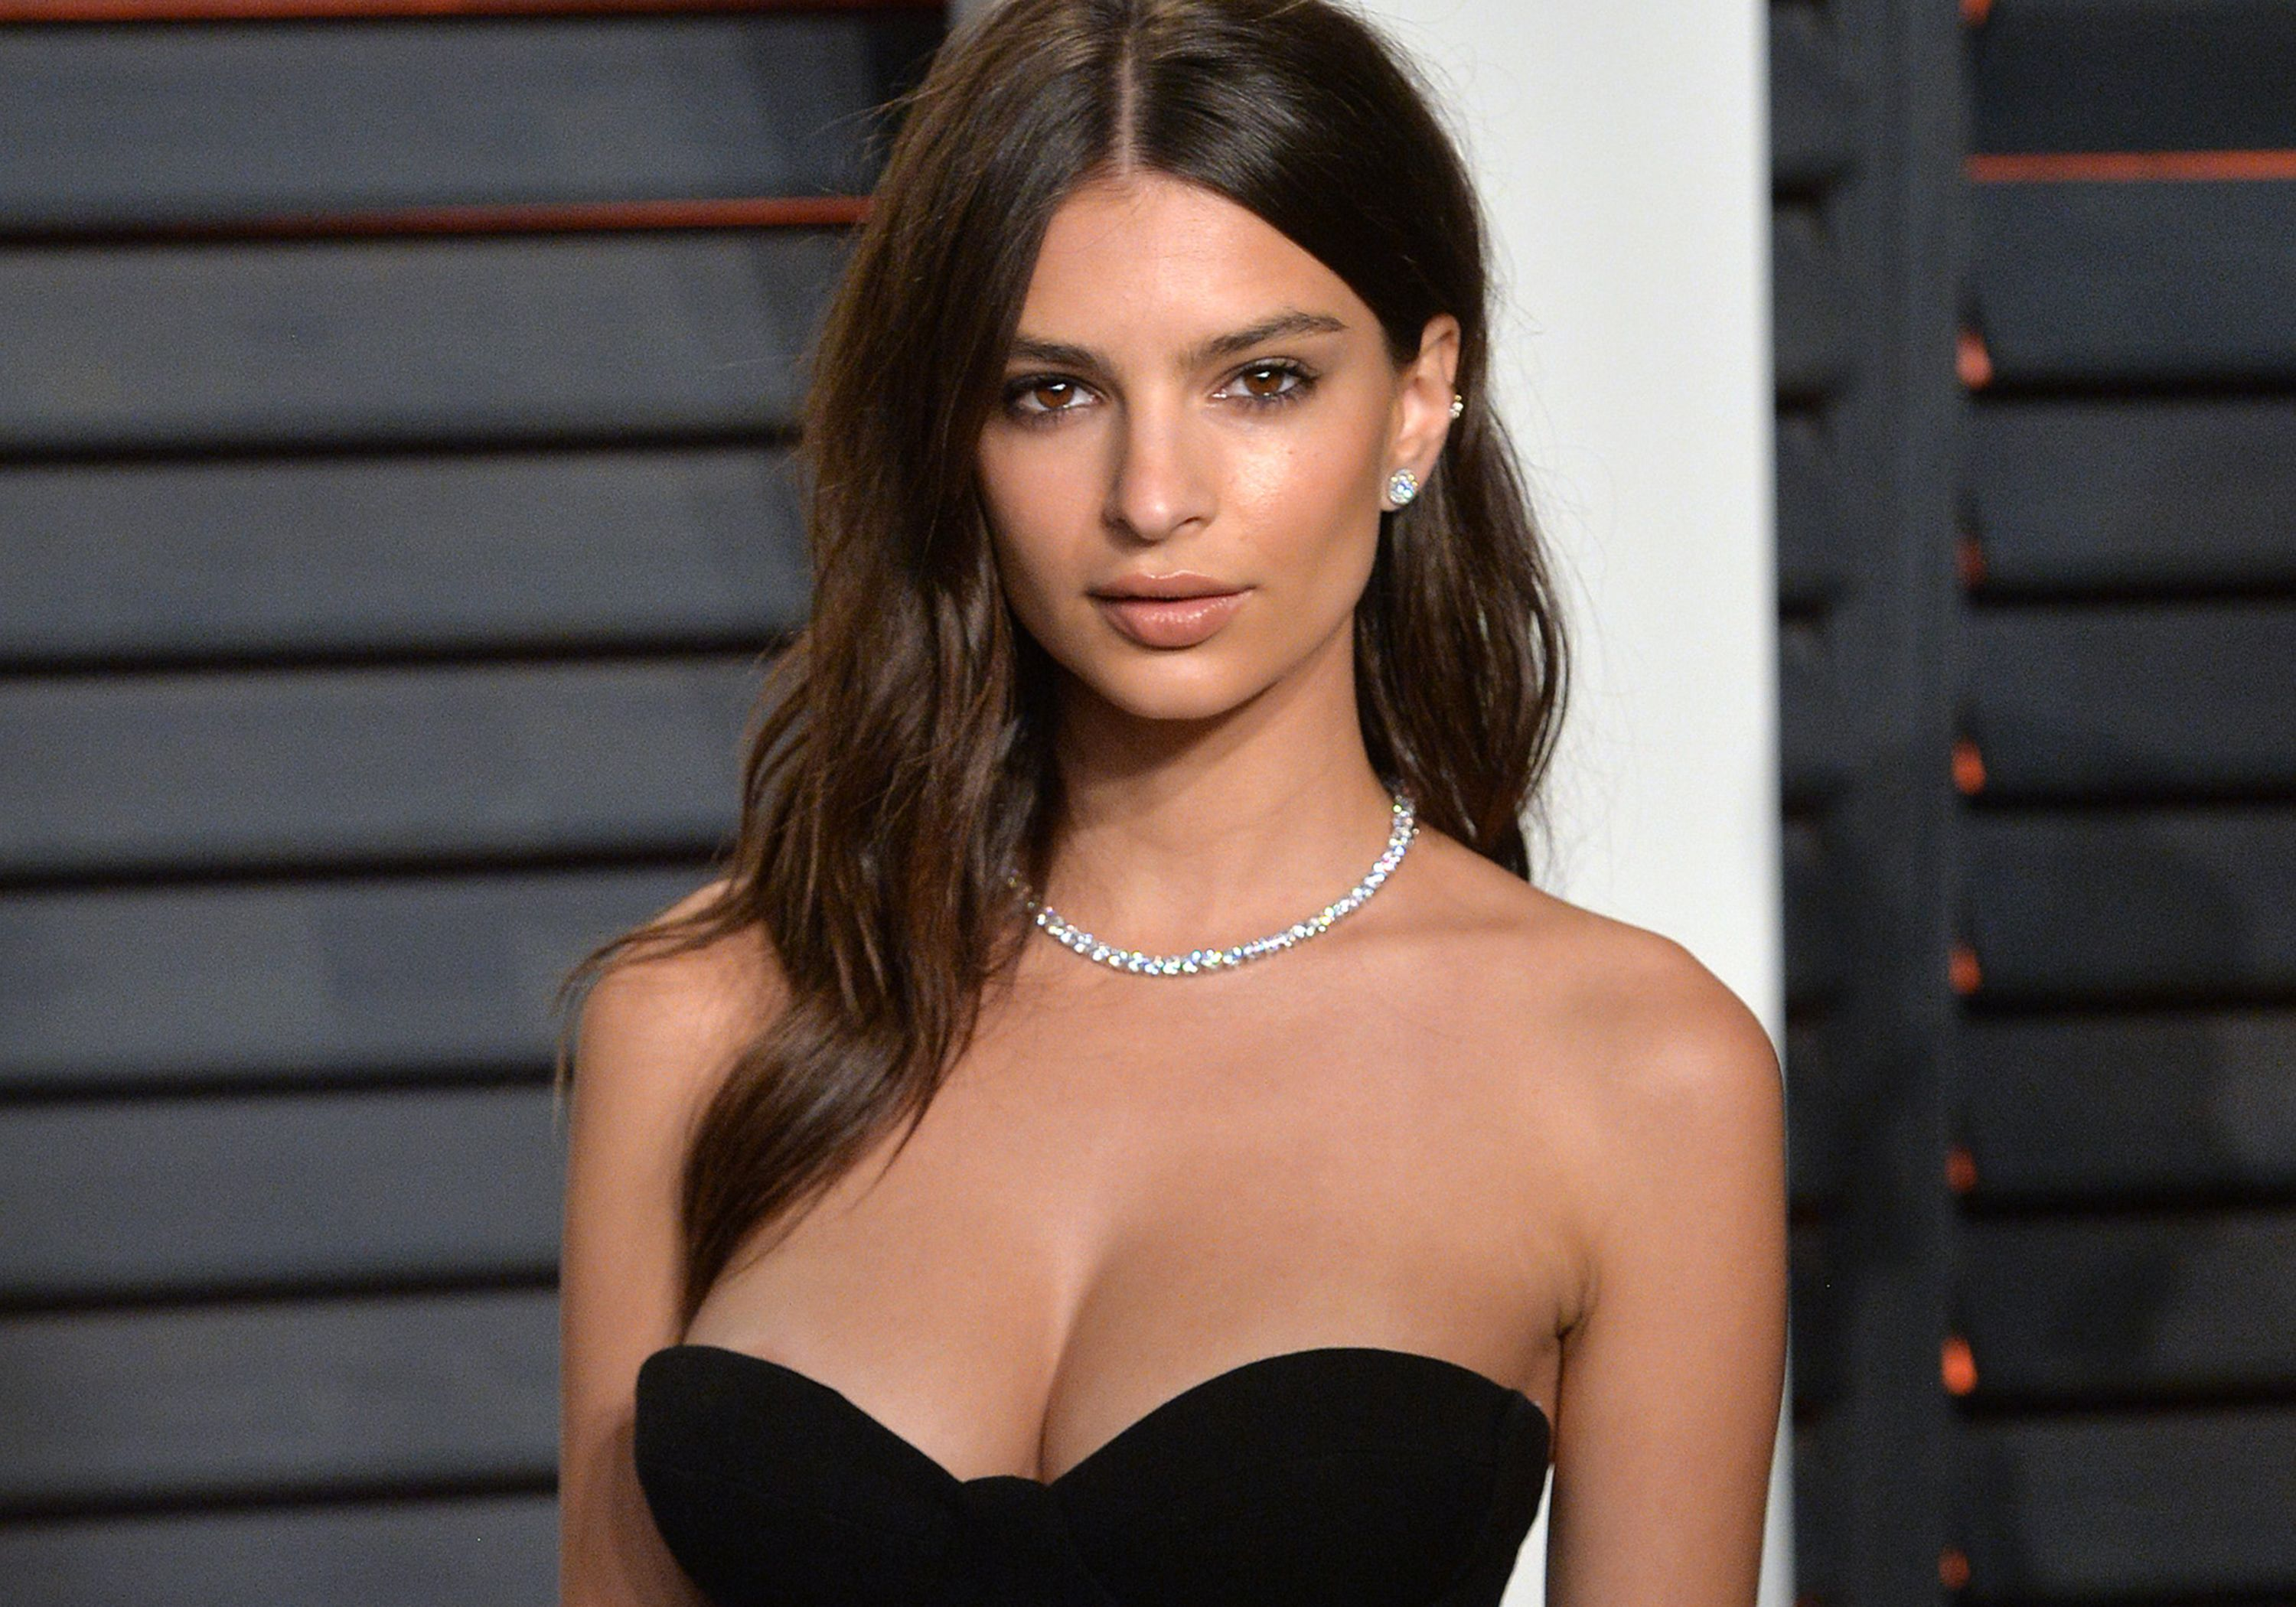 Emily Ratajkowski has been accused of stealing her swimsuit ...